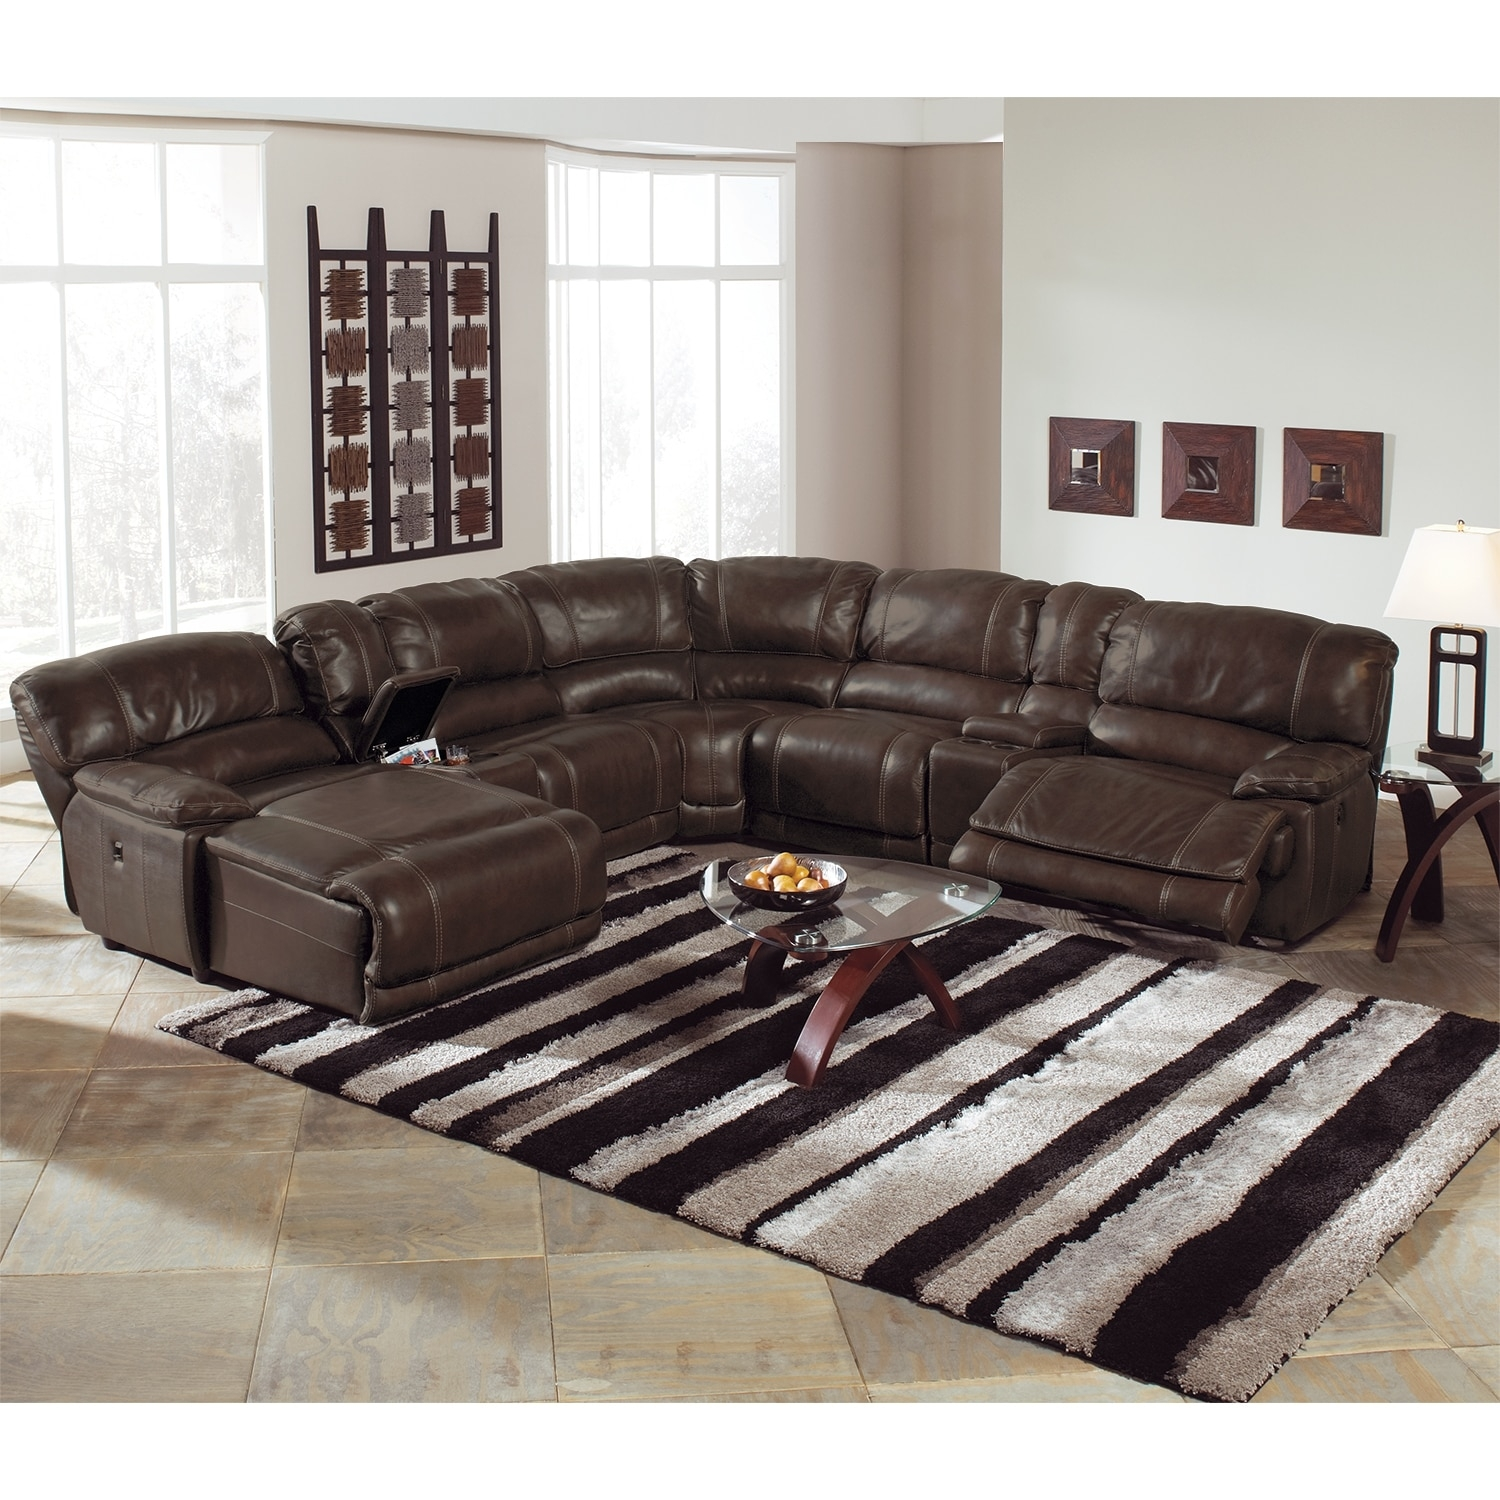 St Malo 6 Piece Power Reclining Sectional With Left Facing Chaise Inside 6 Piece Leather Sectional Sofa (Image 14 of 15)